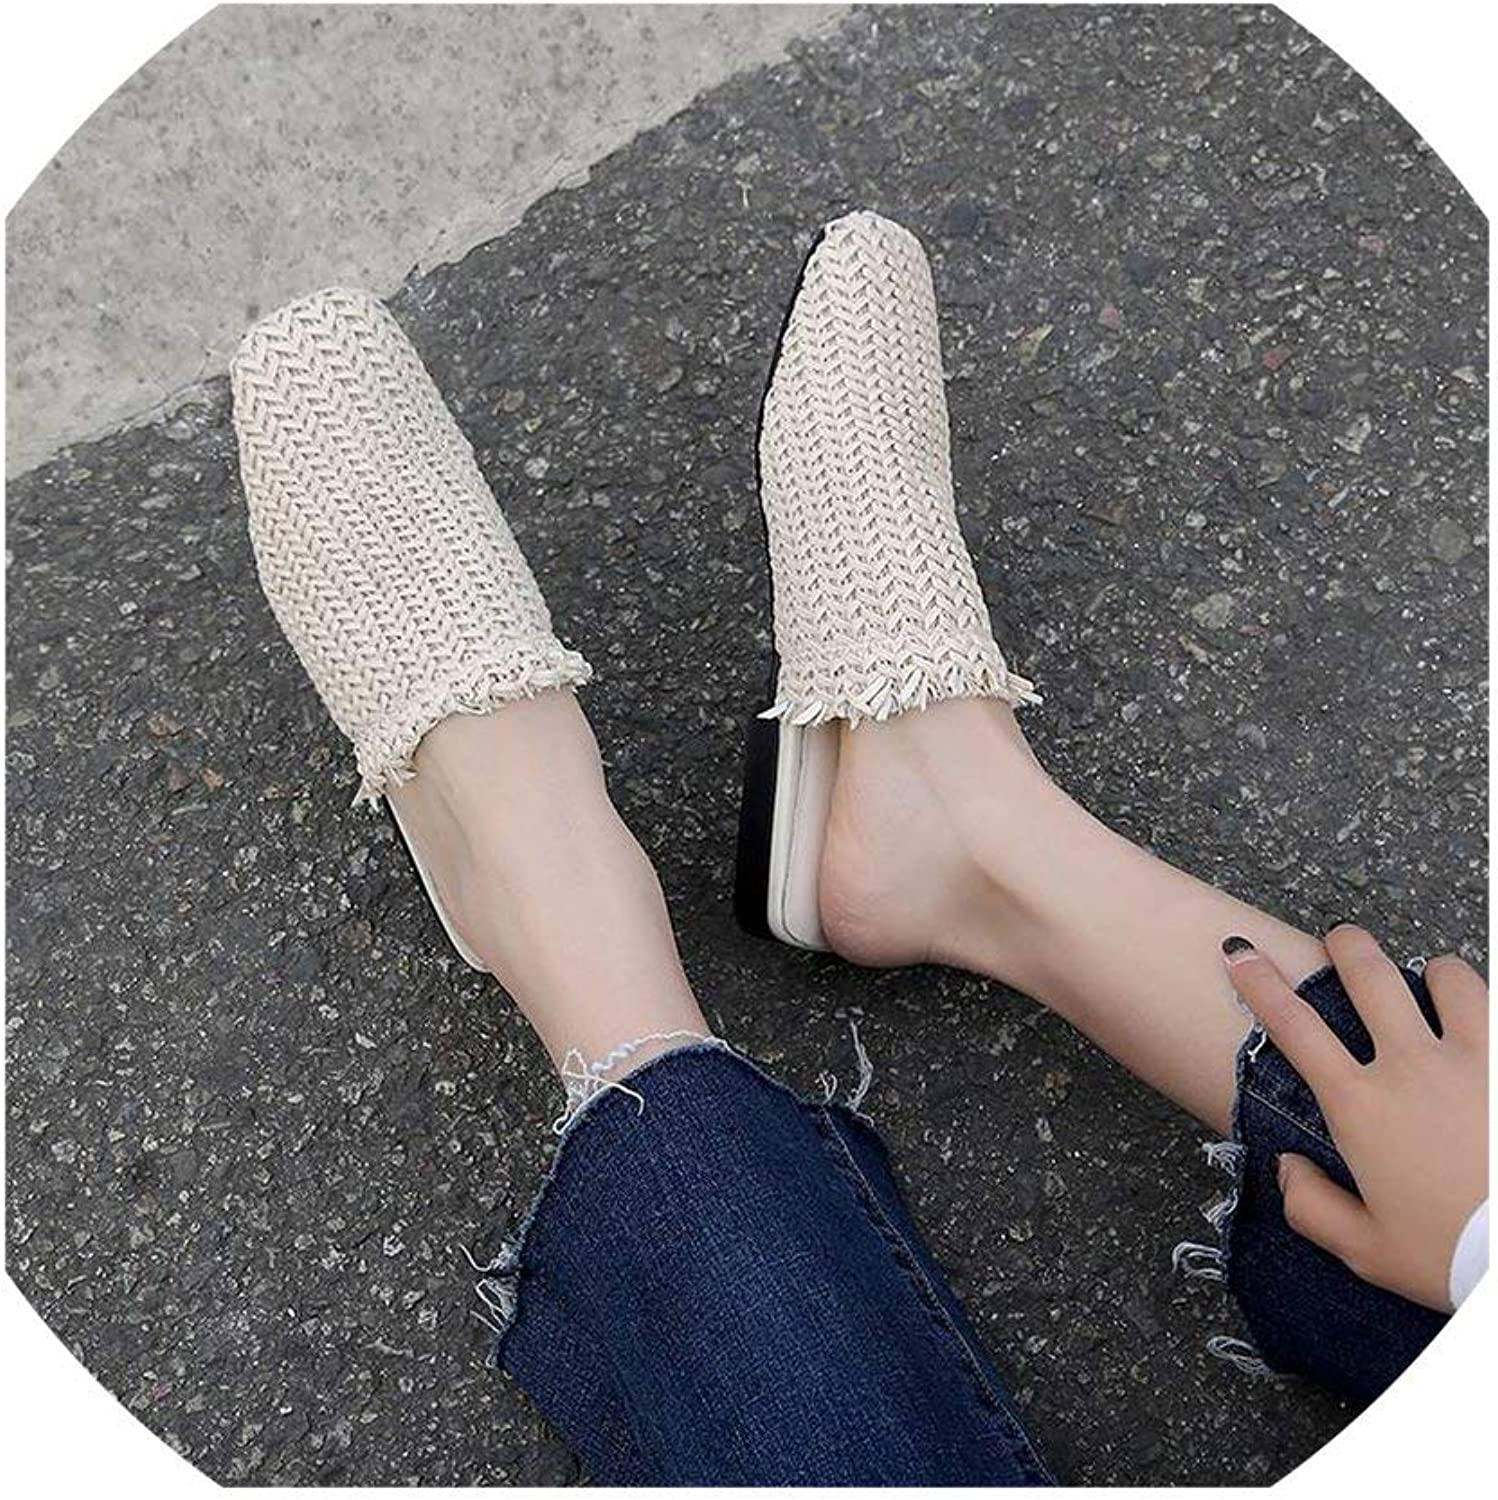 HuaHua-Store Vintage Country Style Square Toe Slip On Mules Pretty Girls Large Size Slippers Straw shoes